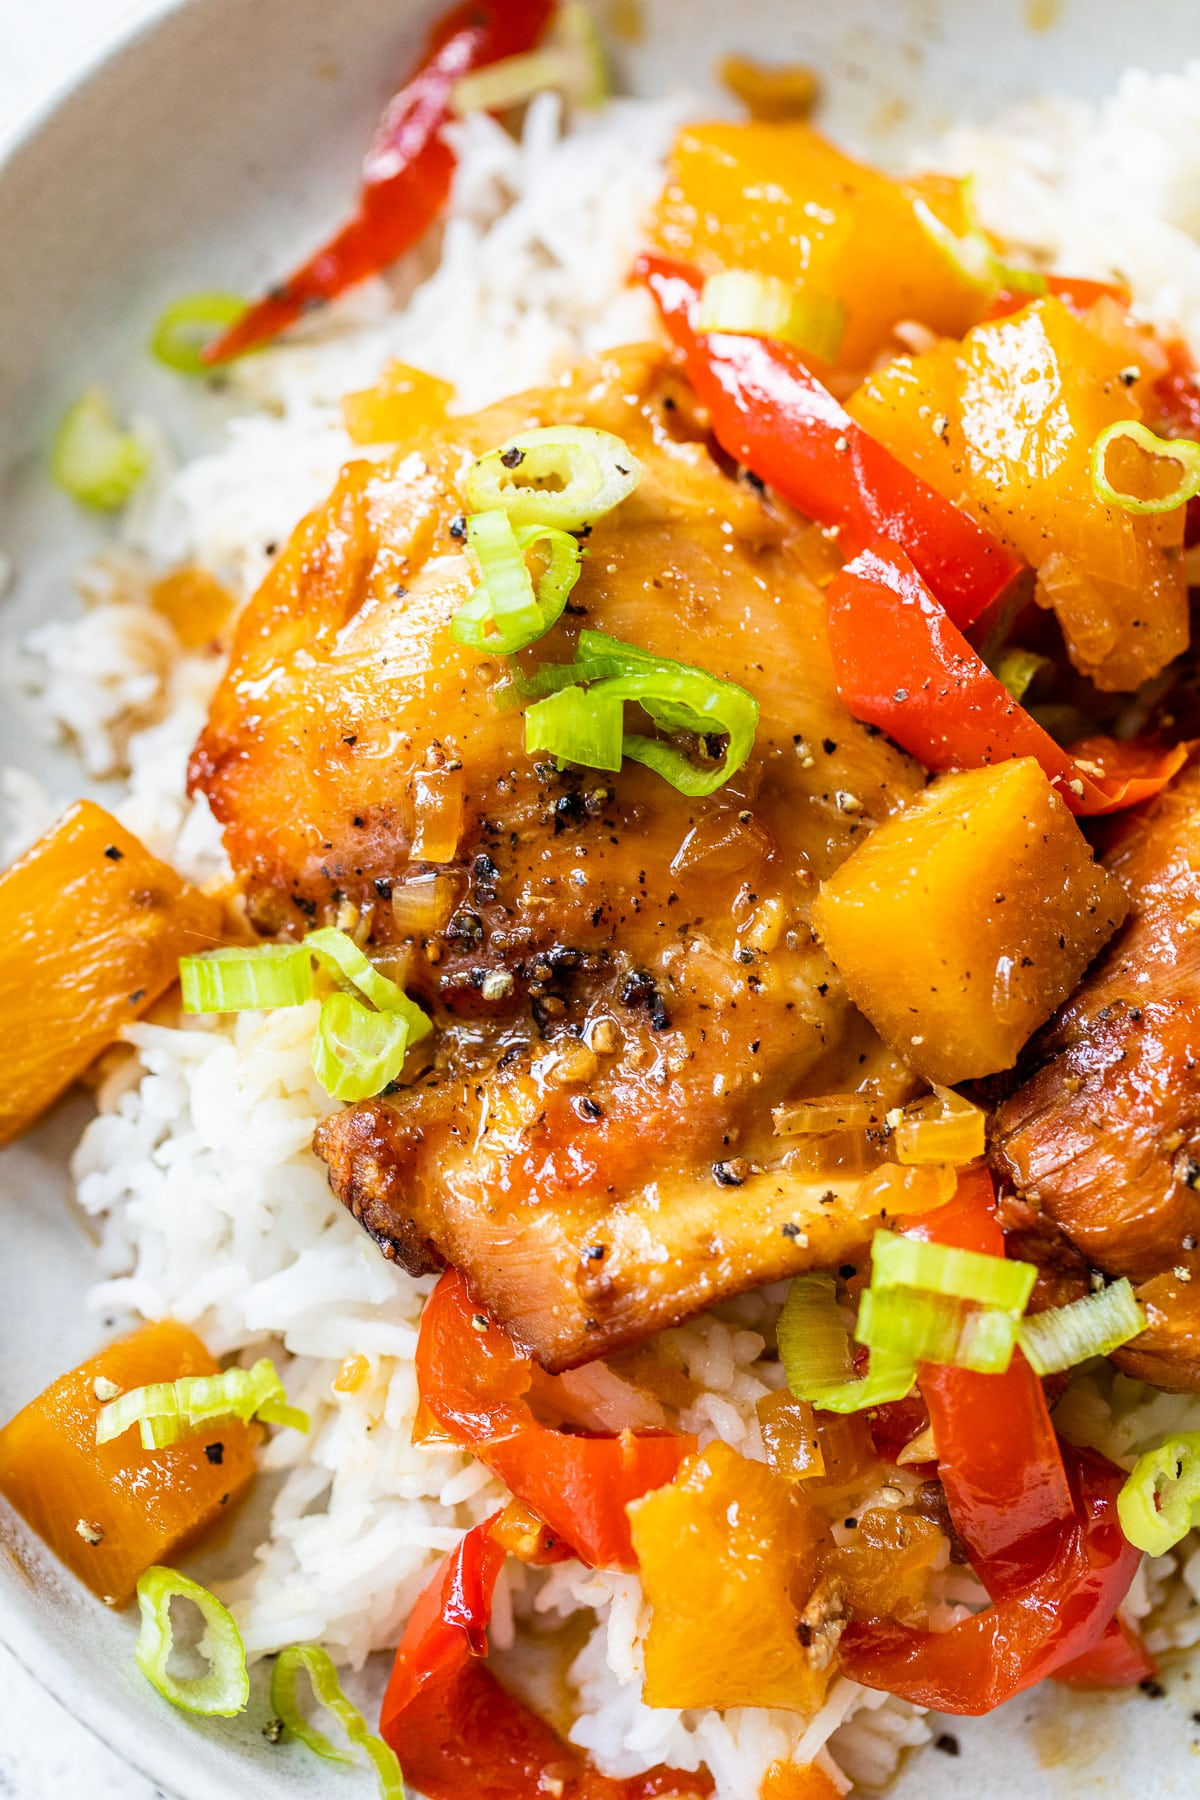 close up of a cooked chicken thigh with red bell peppers and diced pineapple